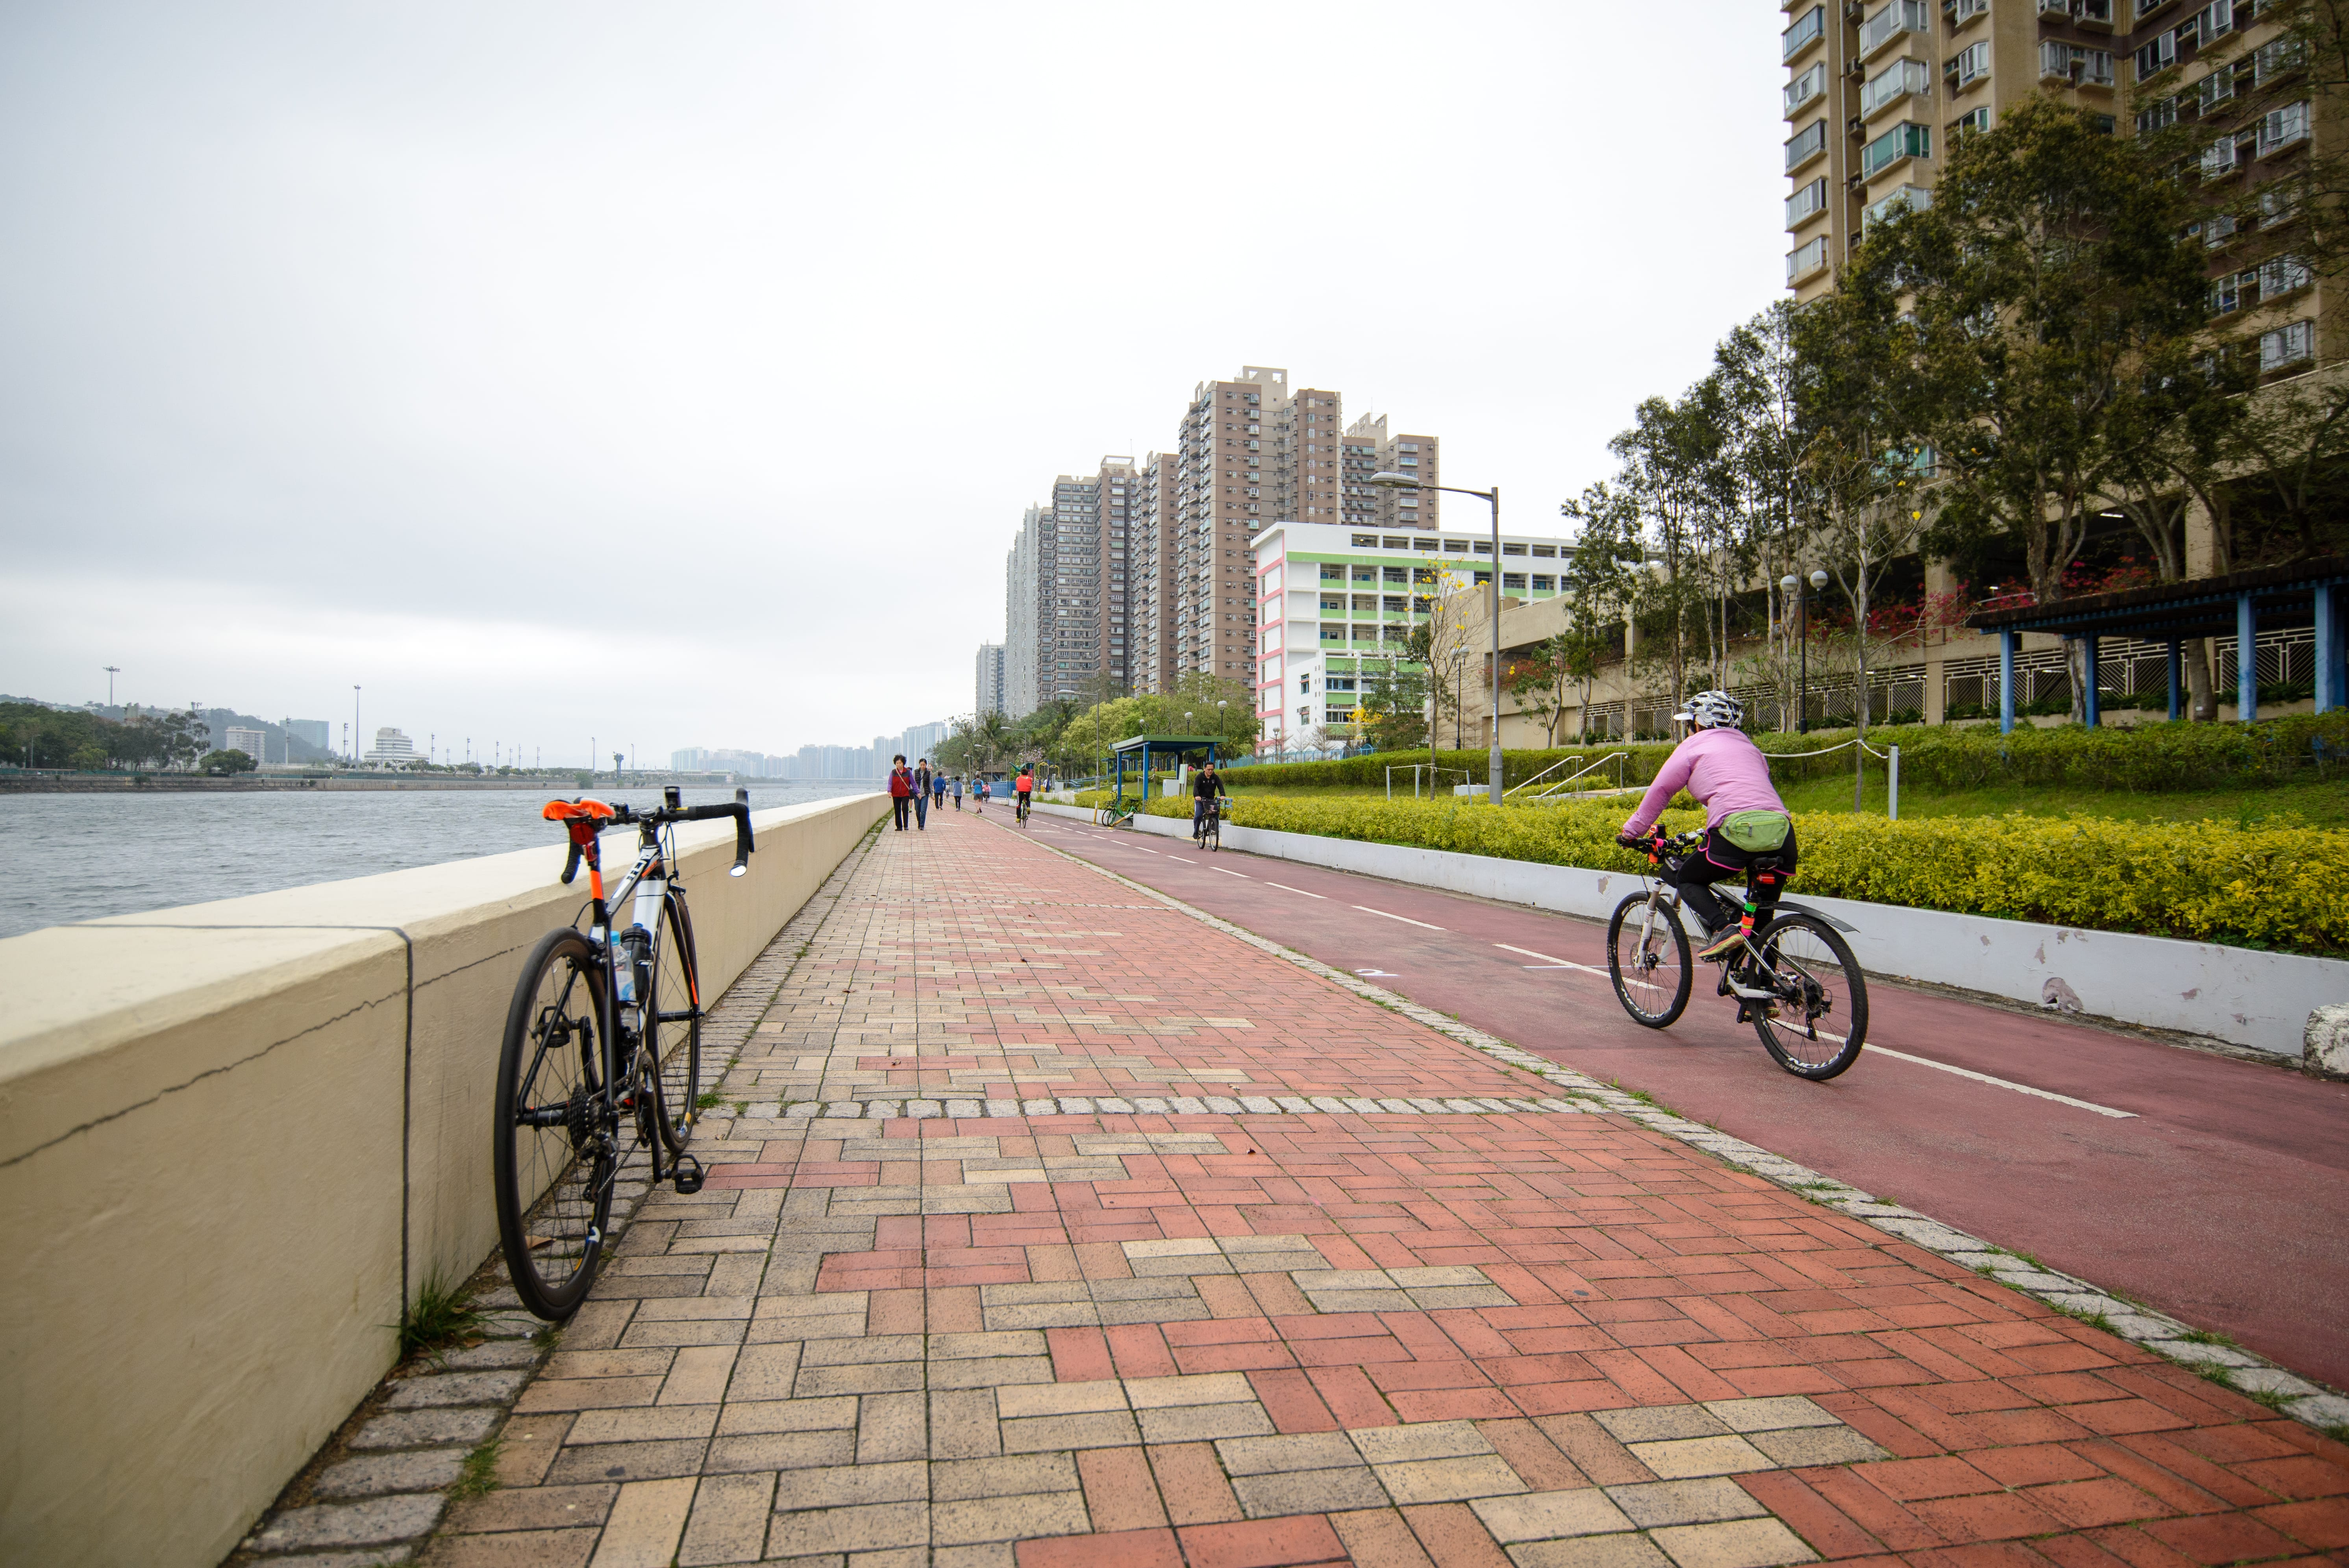 Shing Mun River Promenade opposite to the Jockey Club Shatin Race Course